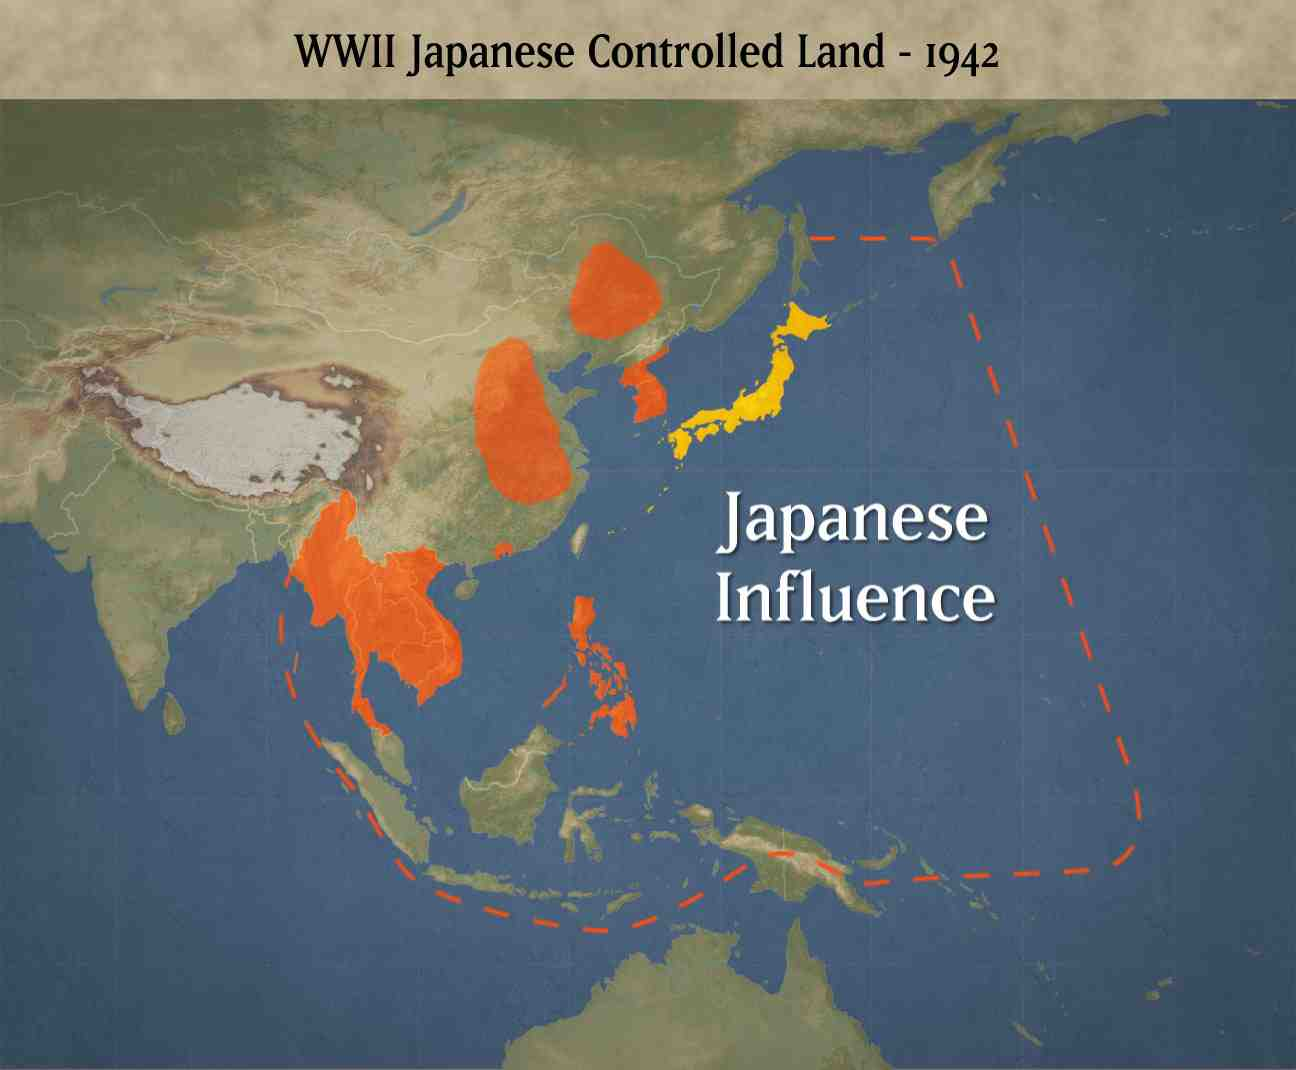 A map of the Japanese controlled land in 1942 during WWII